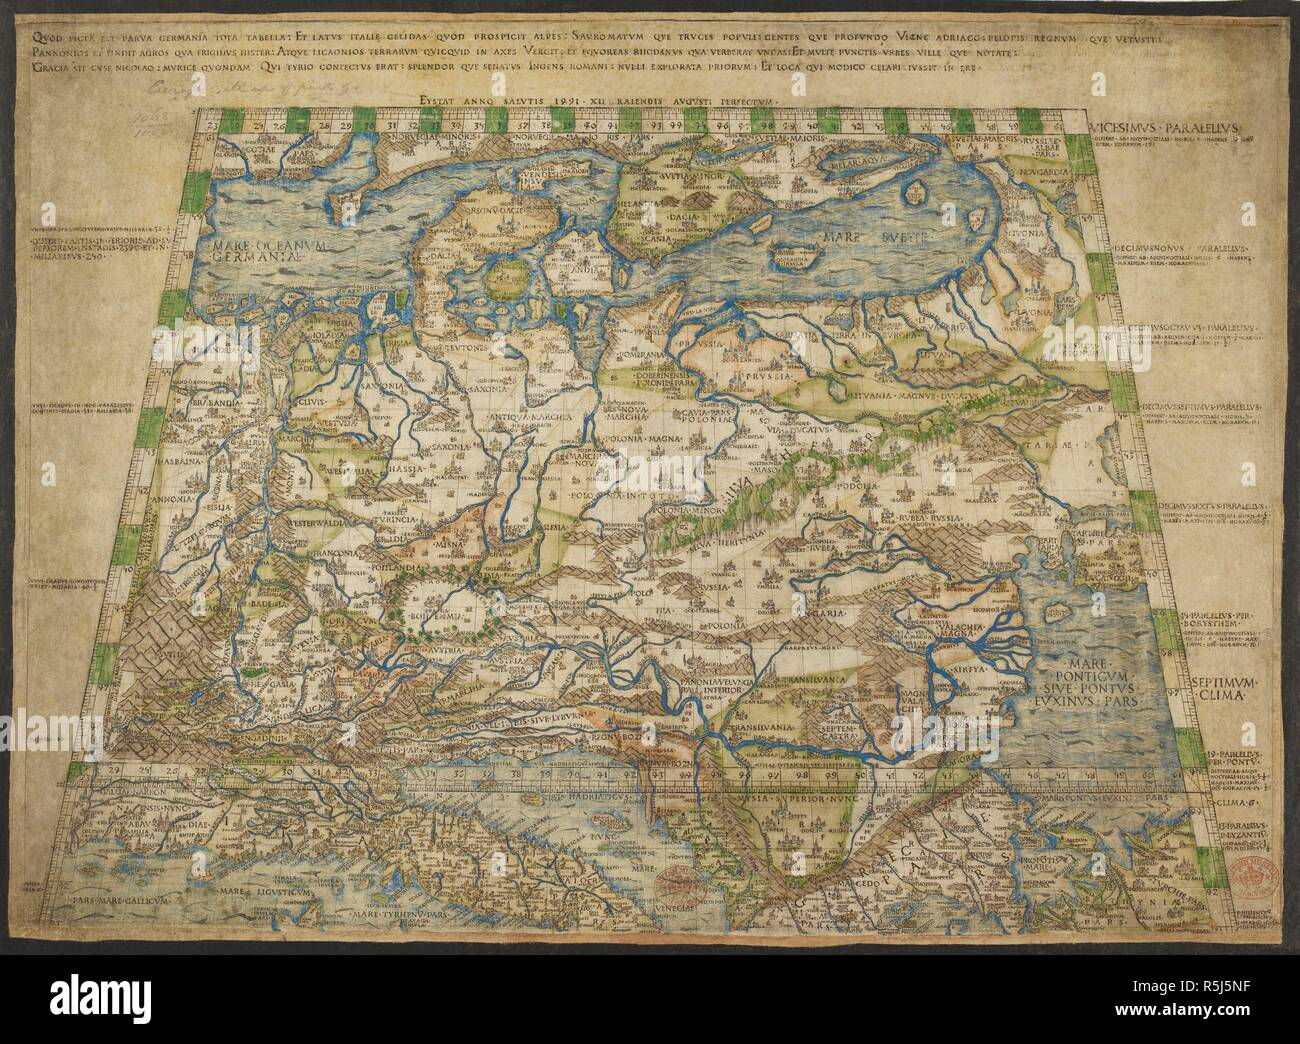 15th Century Map Of Europe.15th Century Map Europe Stock Photos 15th Century Map Europe Stock